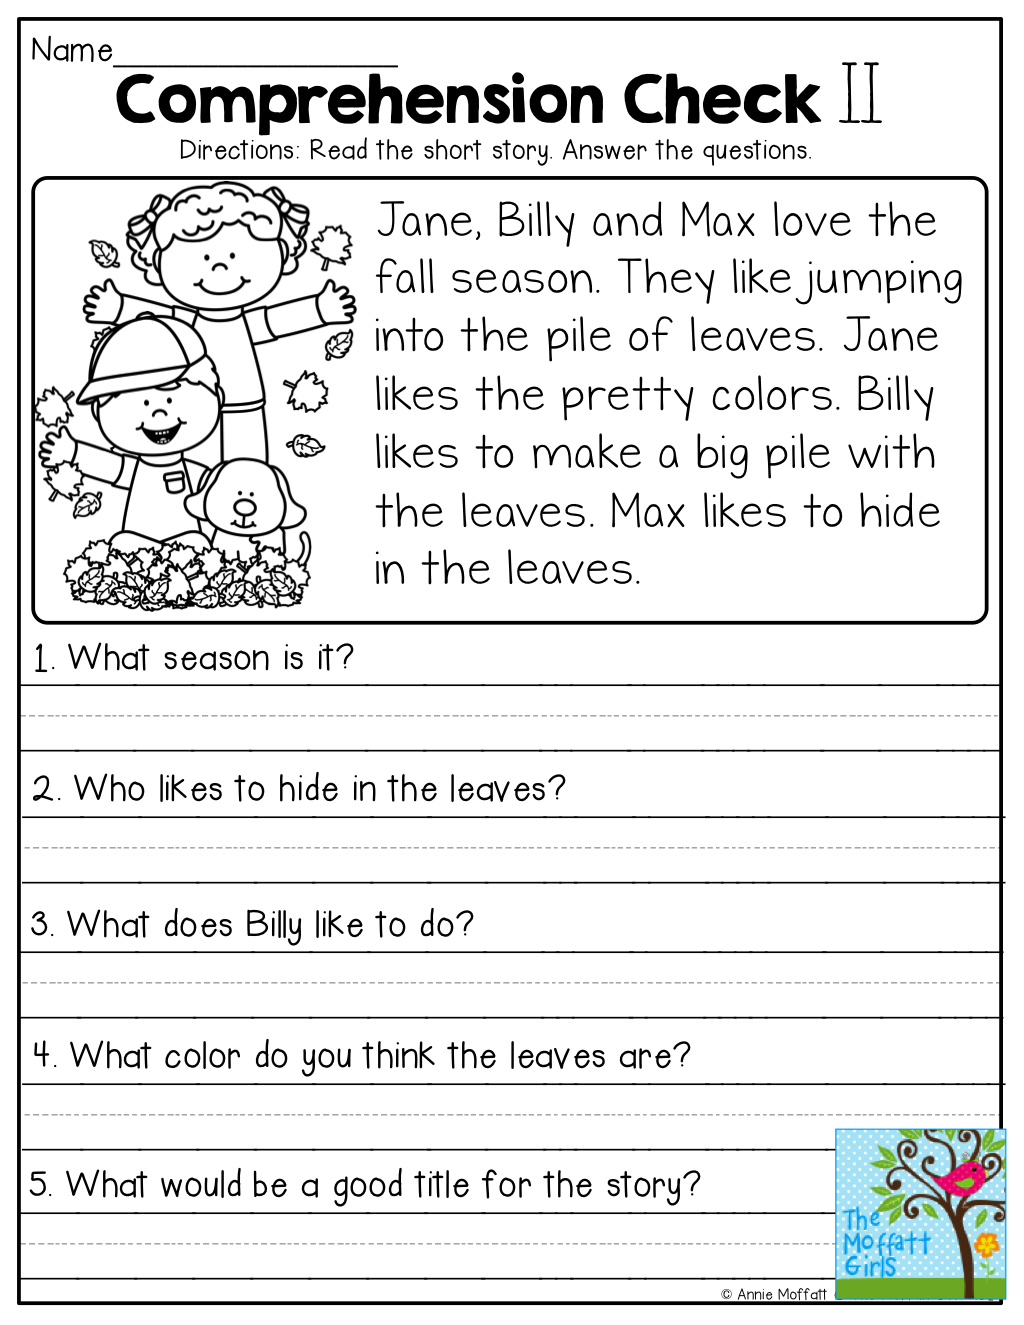 worksheet First Grade Reading Comprehension Worksheet comprehension checks and so many more useful printables best of read the simple story answer questions tons great to help with grade level skills